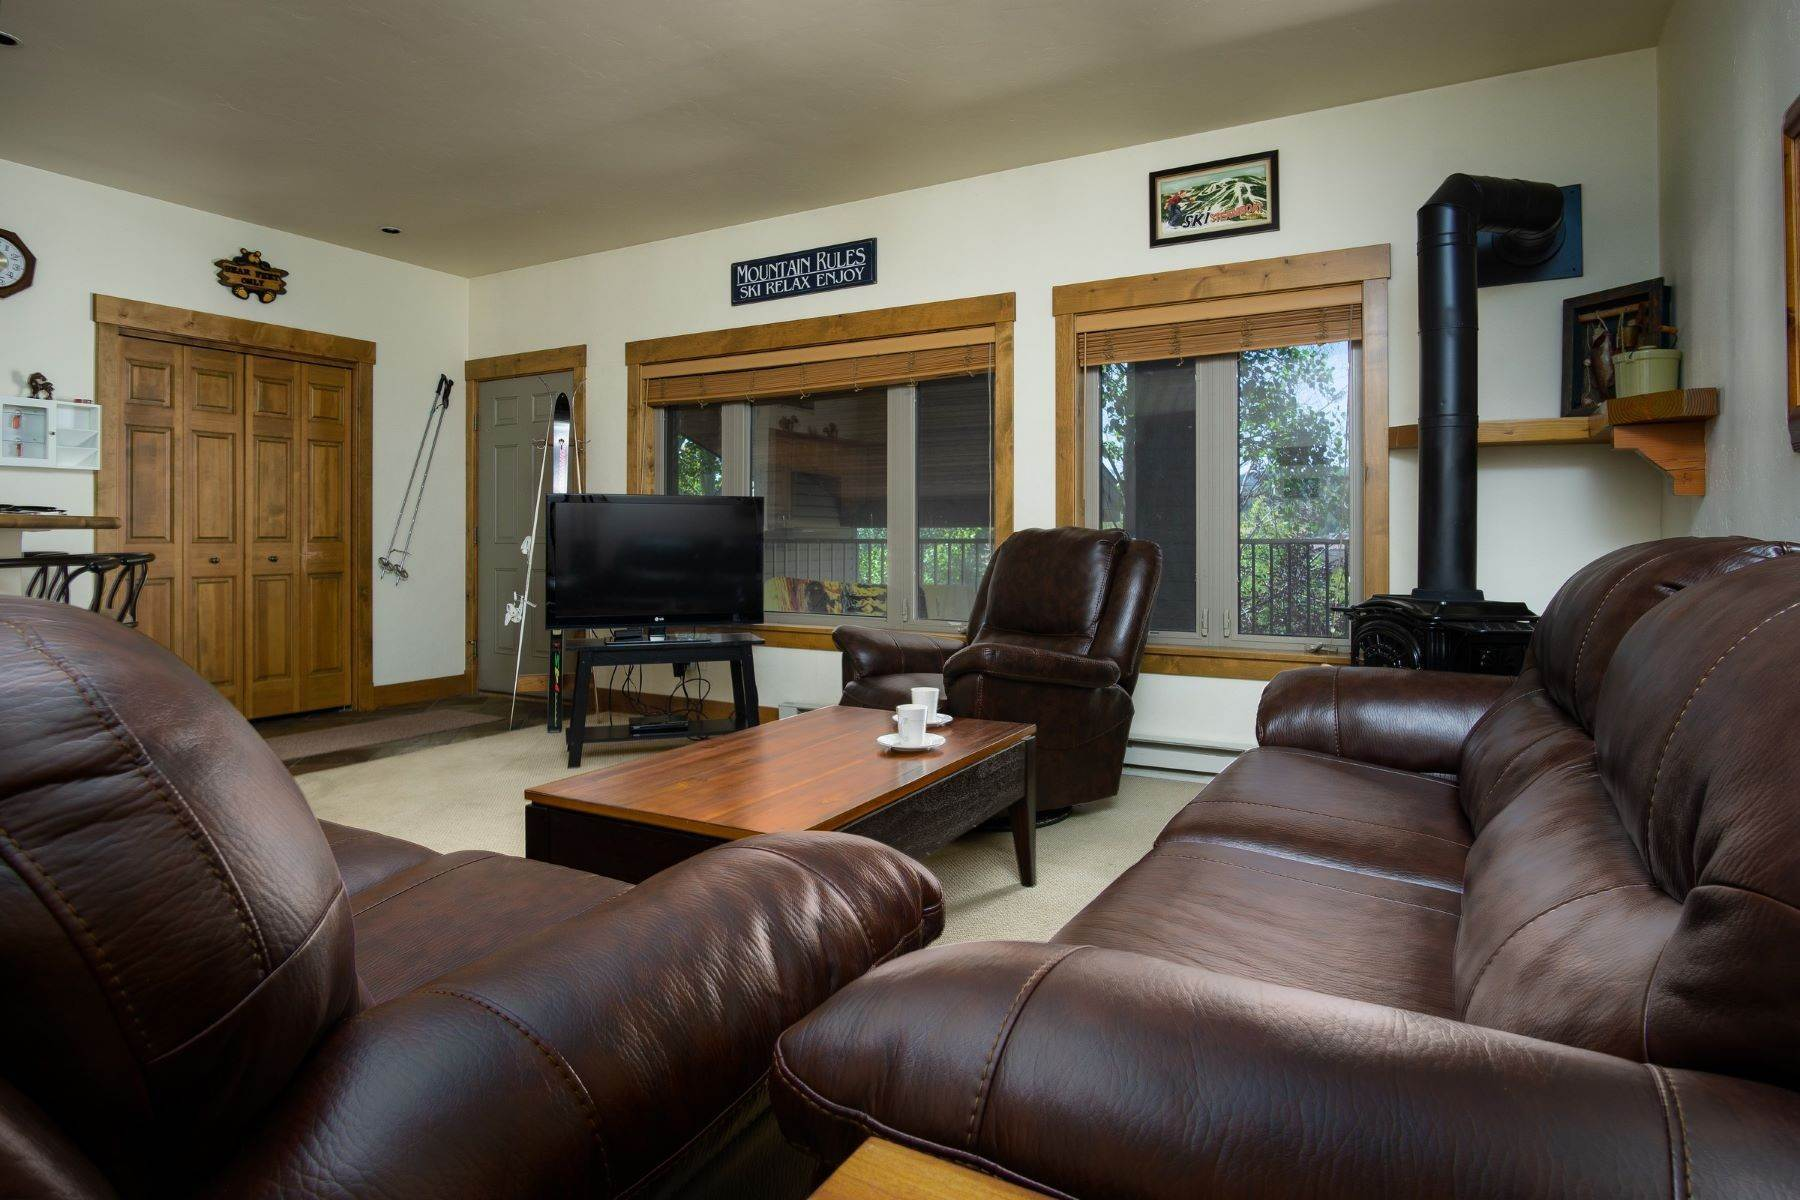 Condominiums for Sale at Conveniently Located Condo 1915 Alpine Plaza Unit #R4 Steamboat Springs, Colorado 80487 United States